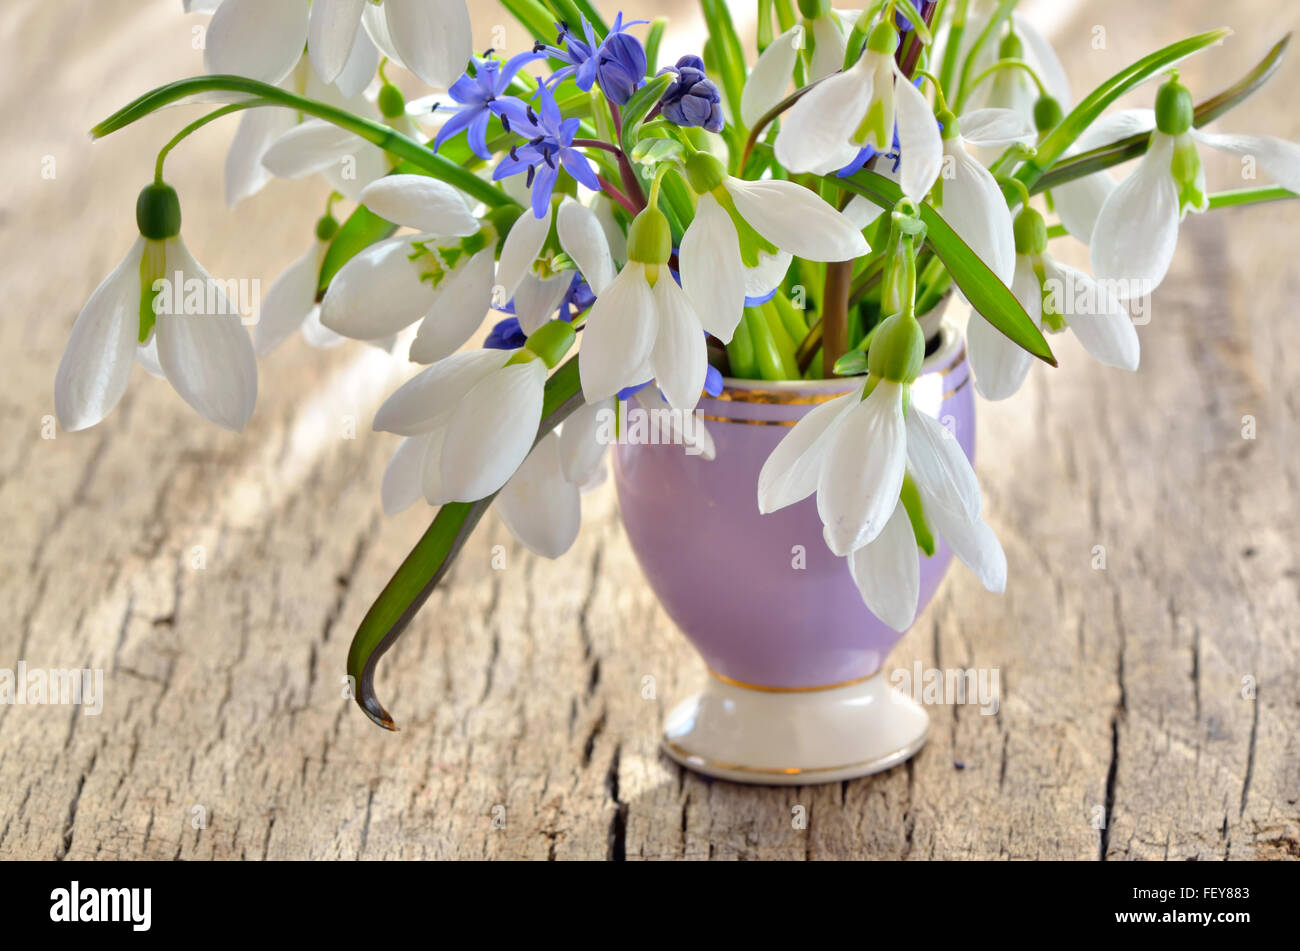 Bunch of Crocus and Snowdrops in a glass vase on old wooden table Stock Photo